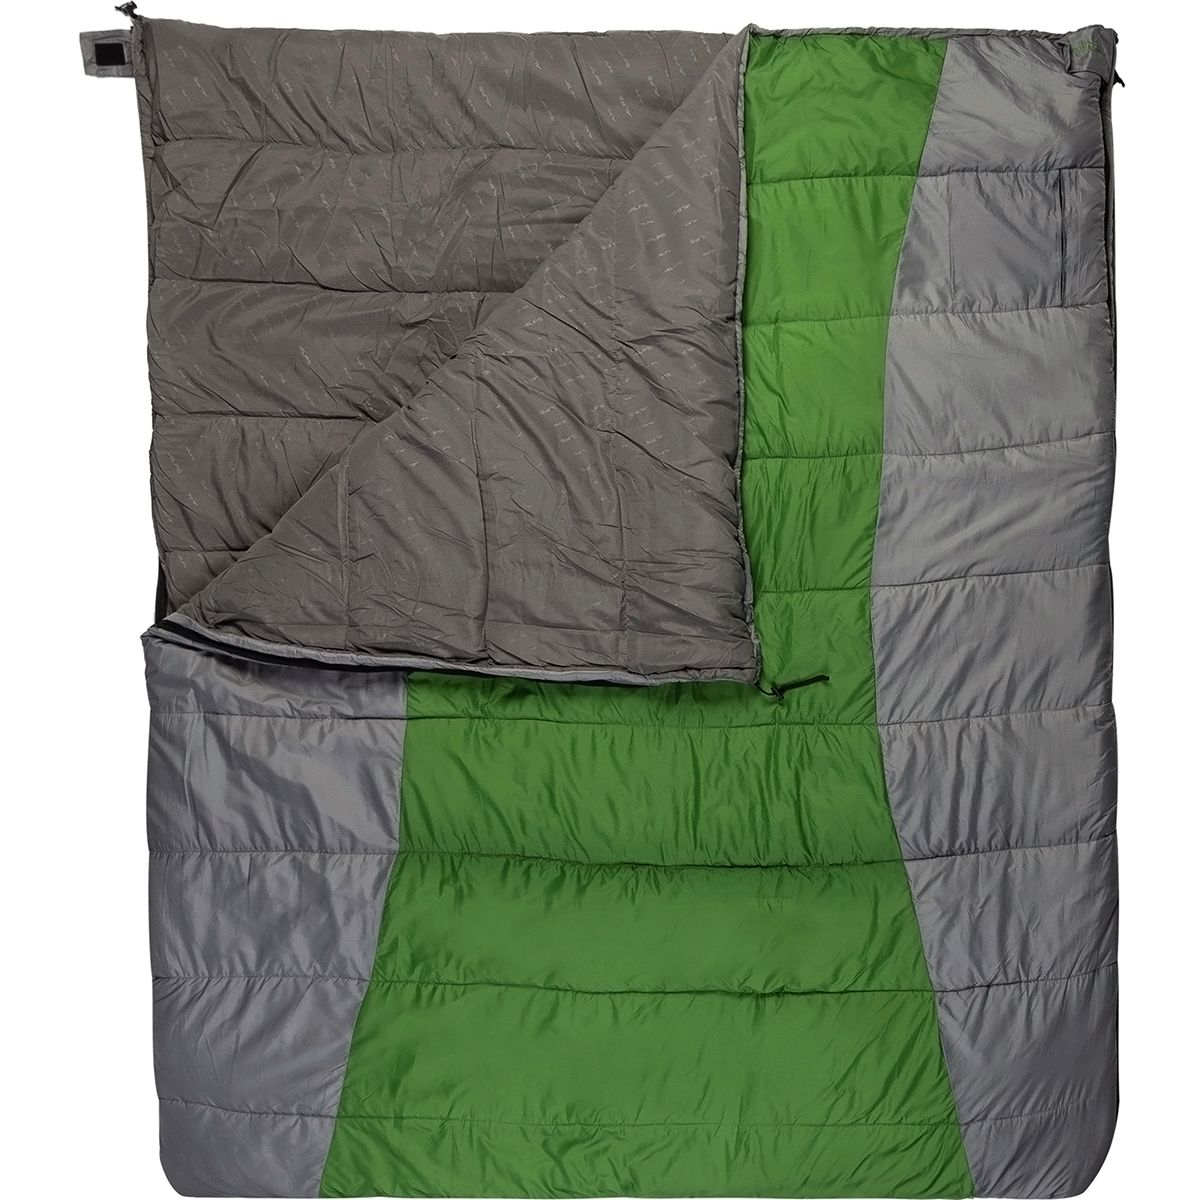 ALPS Mountaineering Double Wide Sleeping Bag: 20 Degree Synthetic Green/Grey, Double